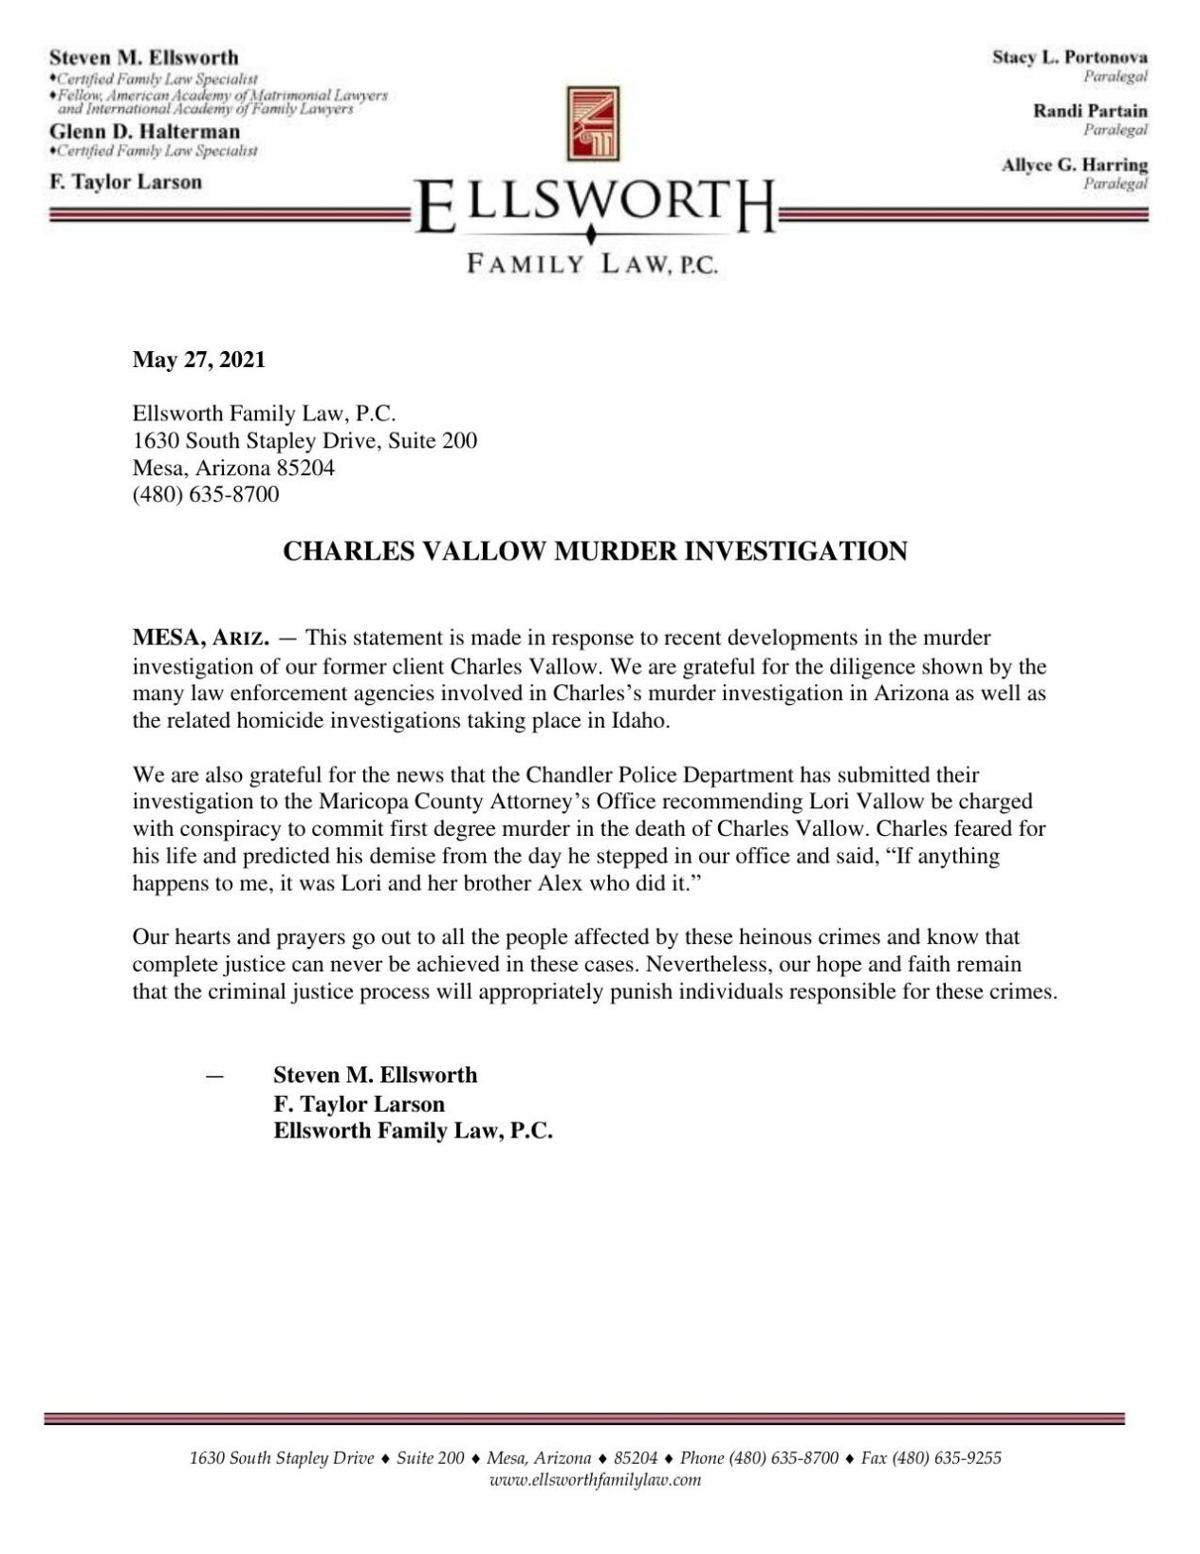 Charles Vallow's lawyer statement